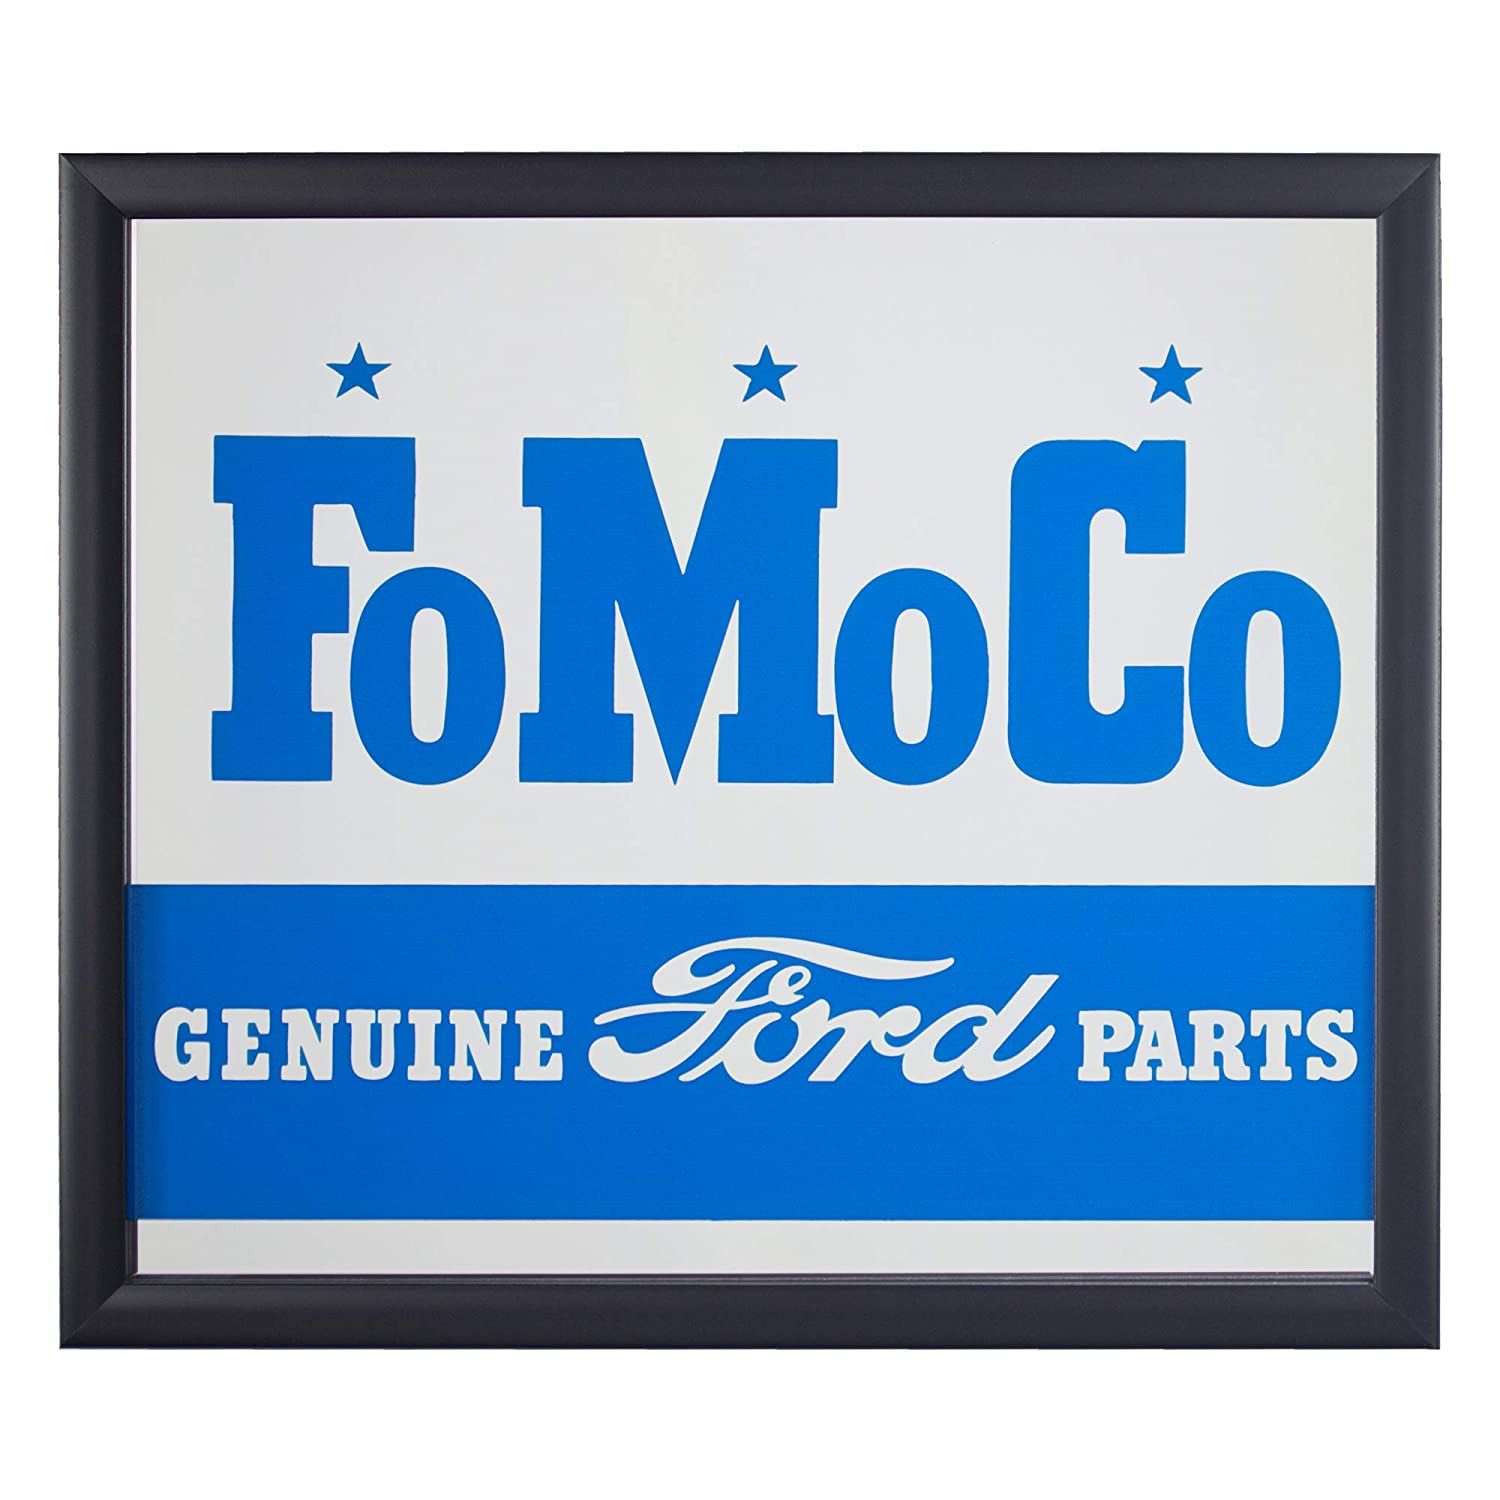 American Art Decor Officially Licensed Ford Motor Company Genuine Parts  Framed Printed Accent Mirror for Man Cave, Bar, Garage (13